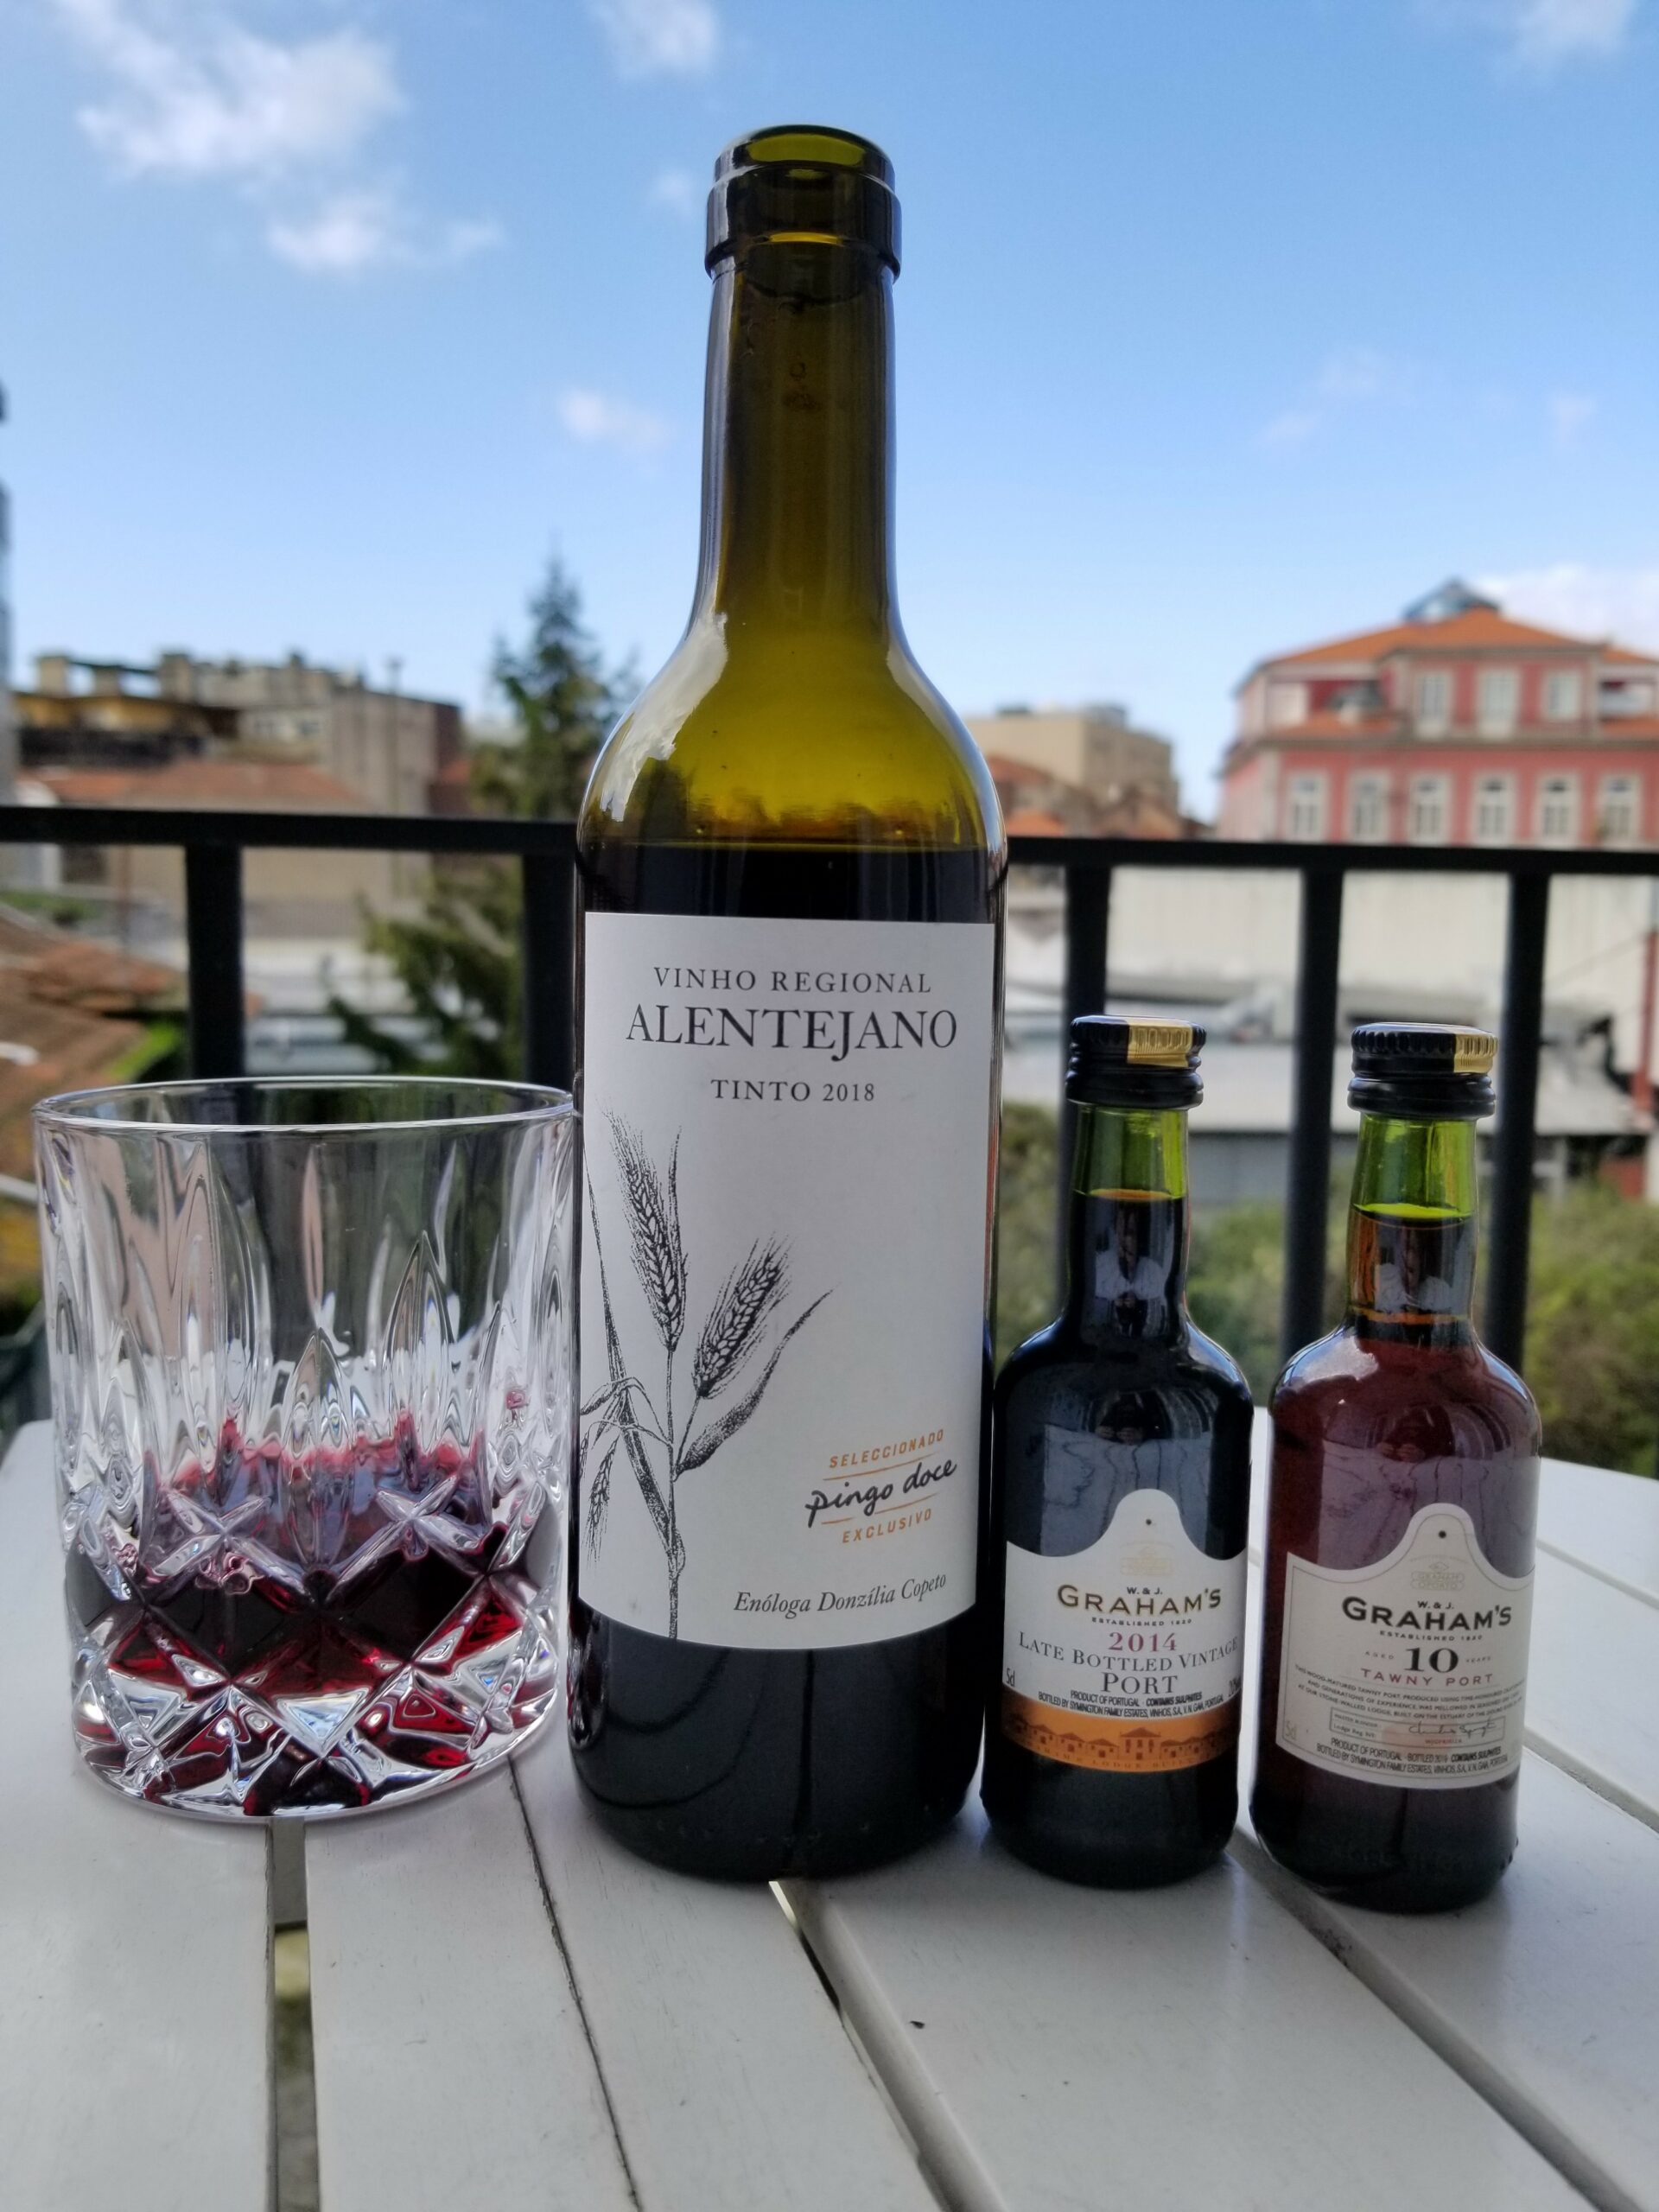 Cheap goods from PIngo Doce; a bottle of red wine for 1.50 euros and small port bottles